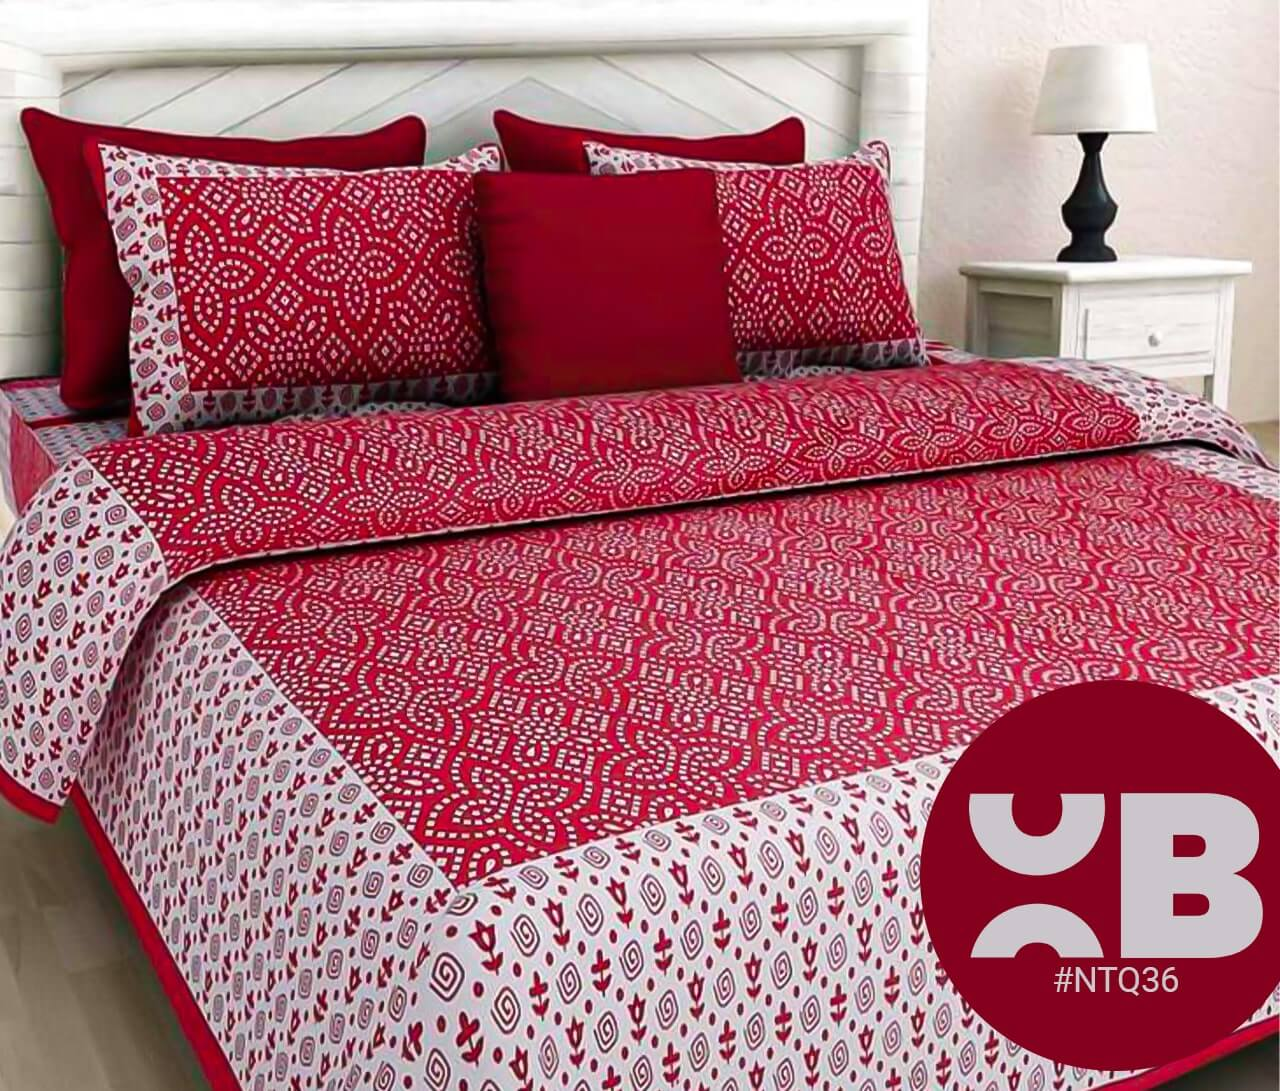 Red Maroon Bandhej Print Double Bedsheet With Two Pillow Covers (90x100)